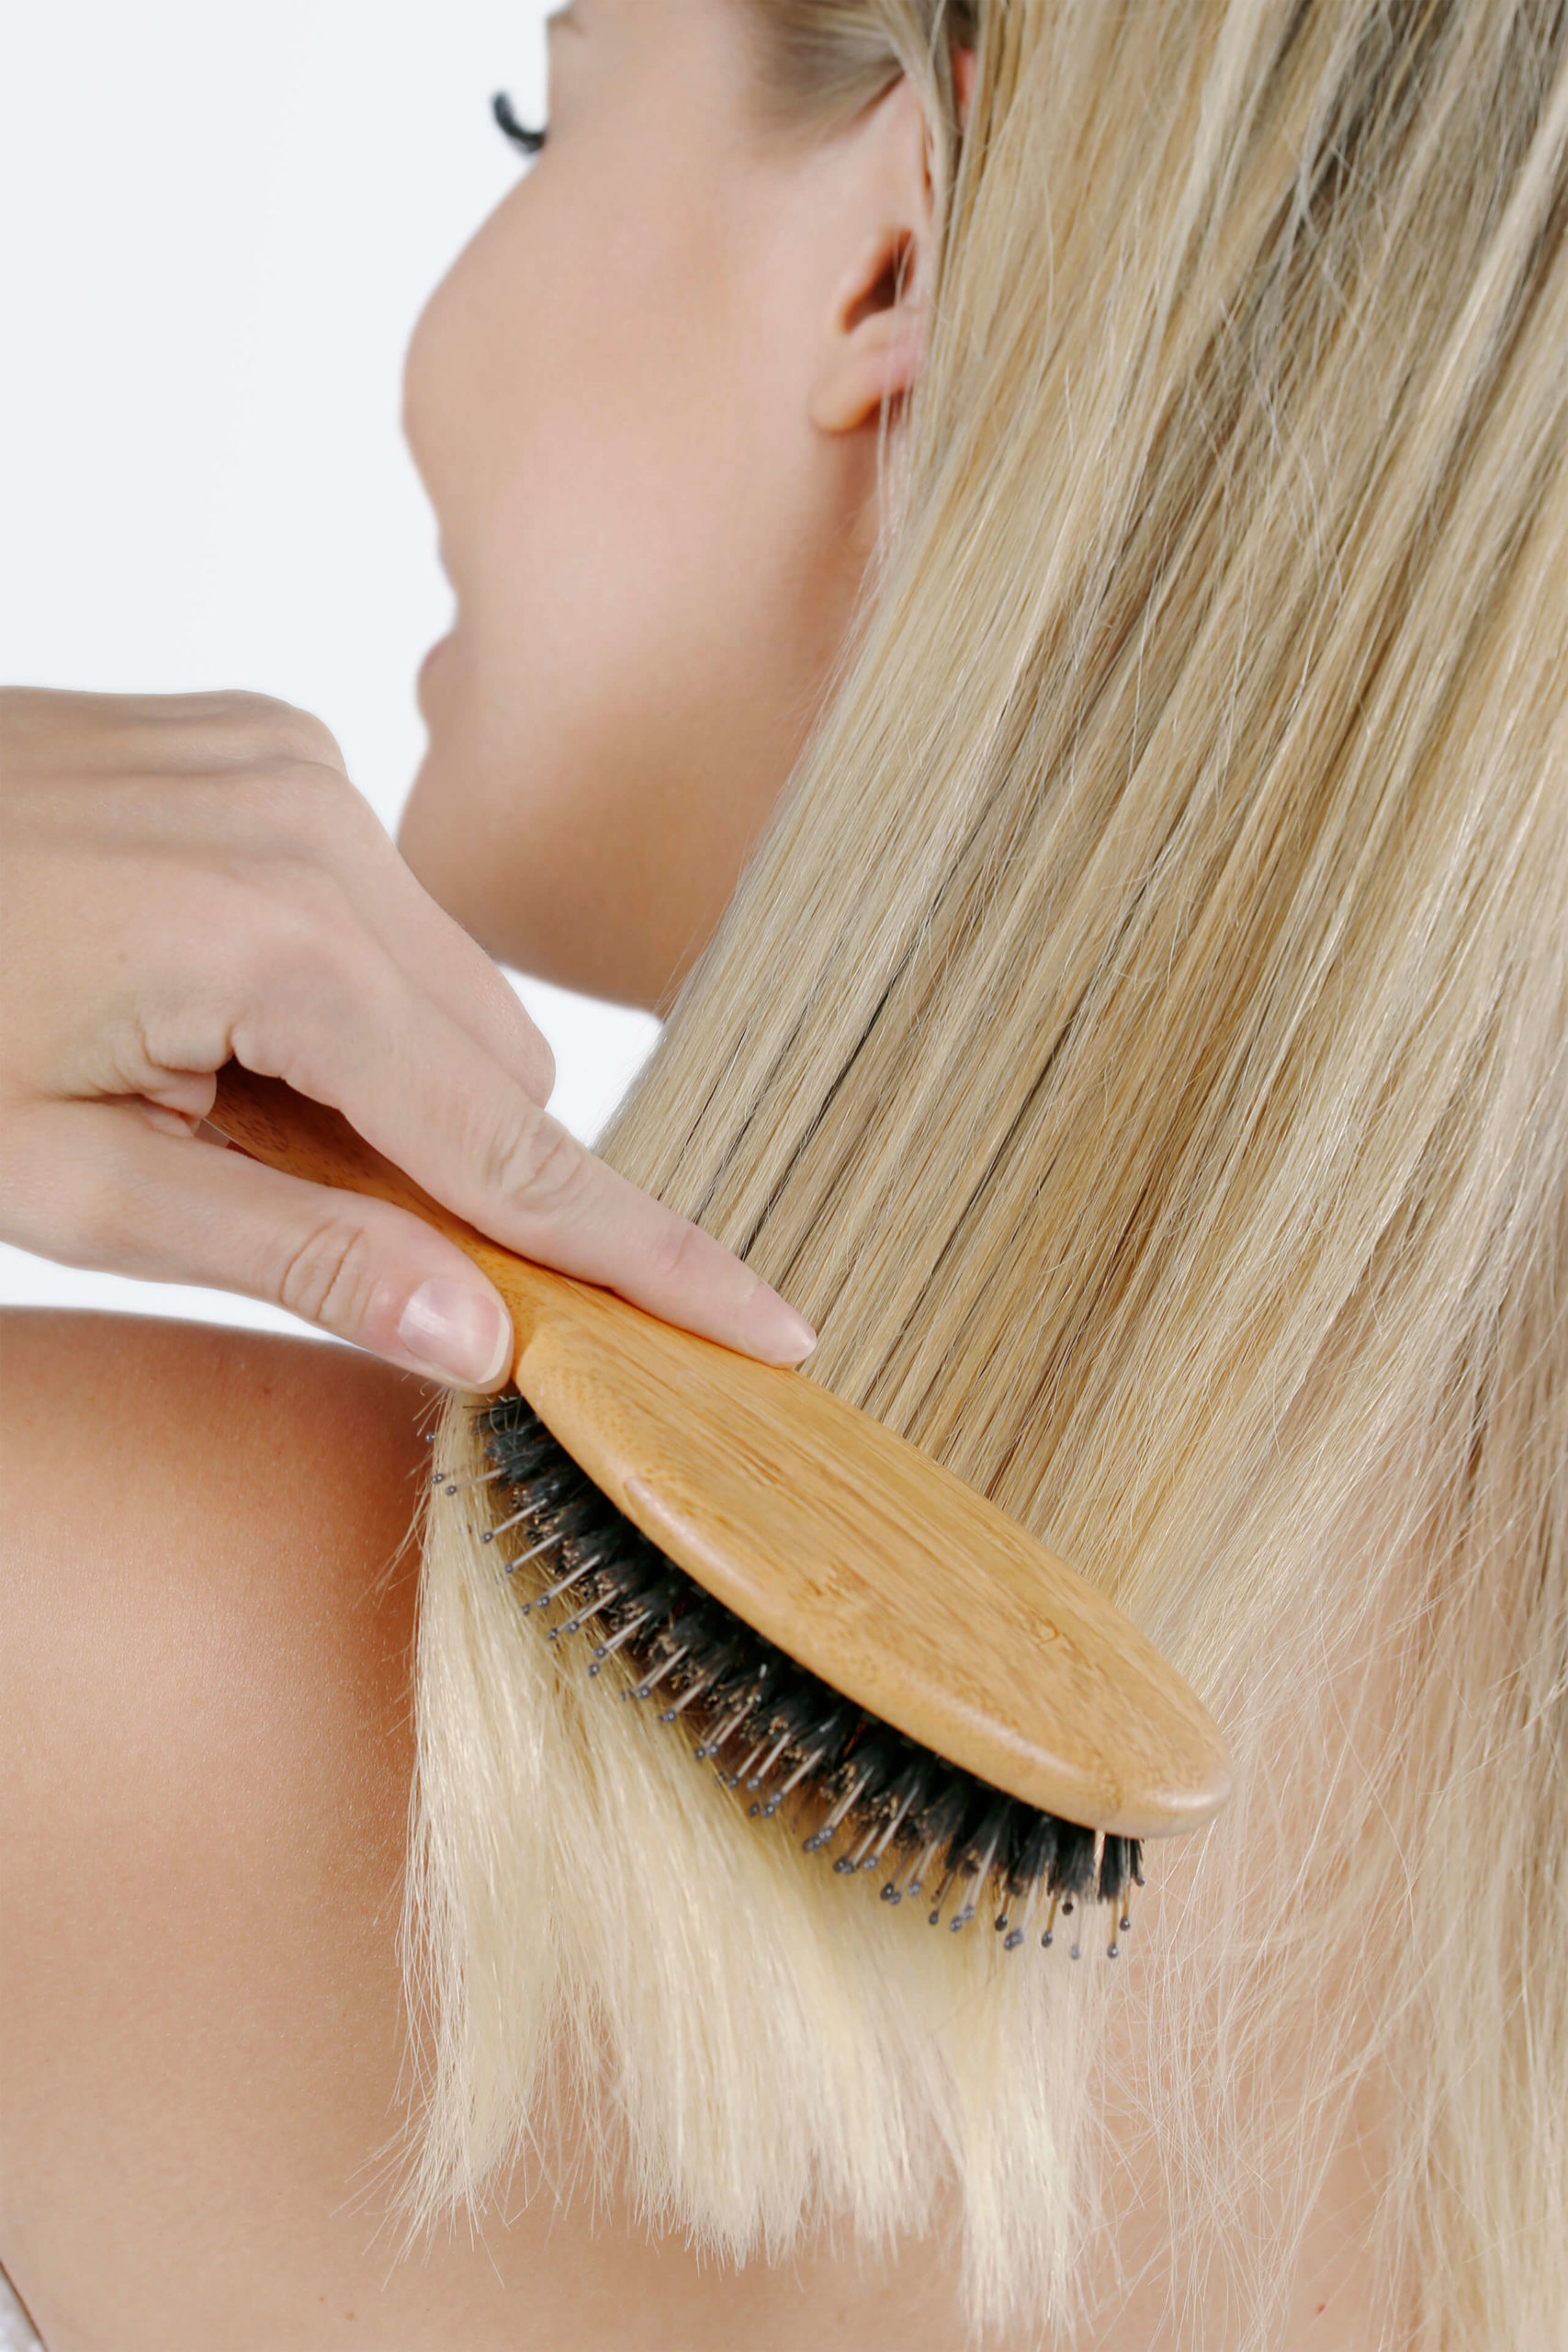 Introducing the perfect combination in a hairbrush